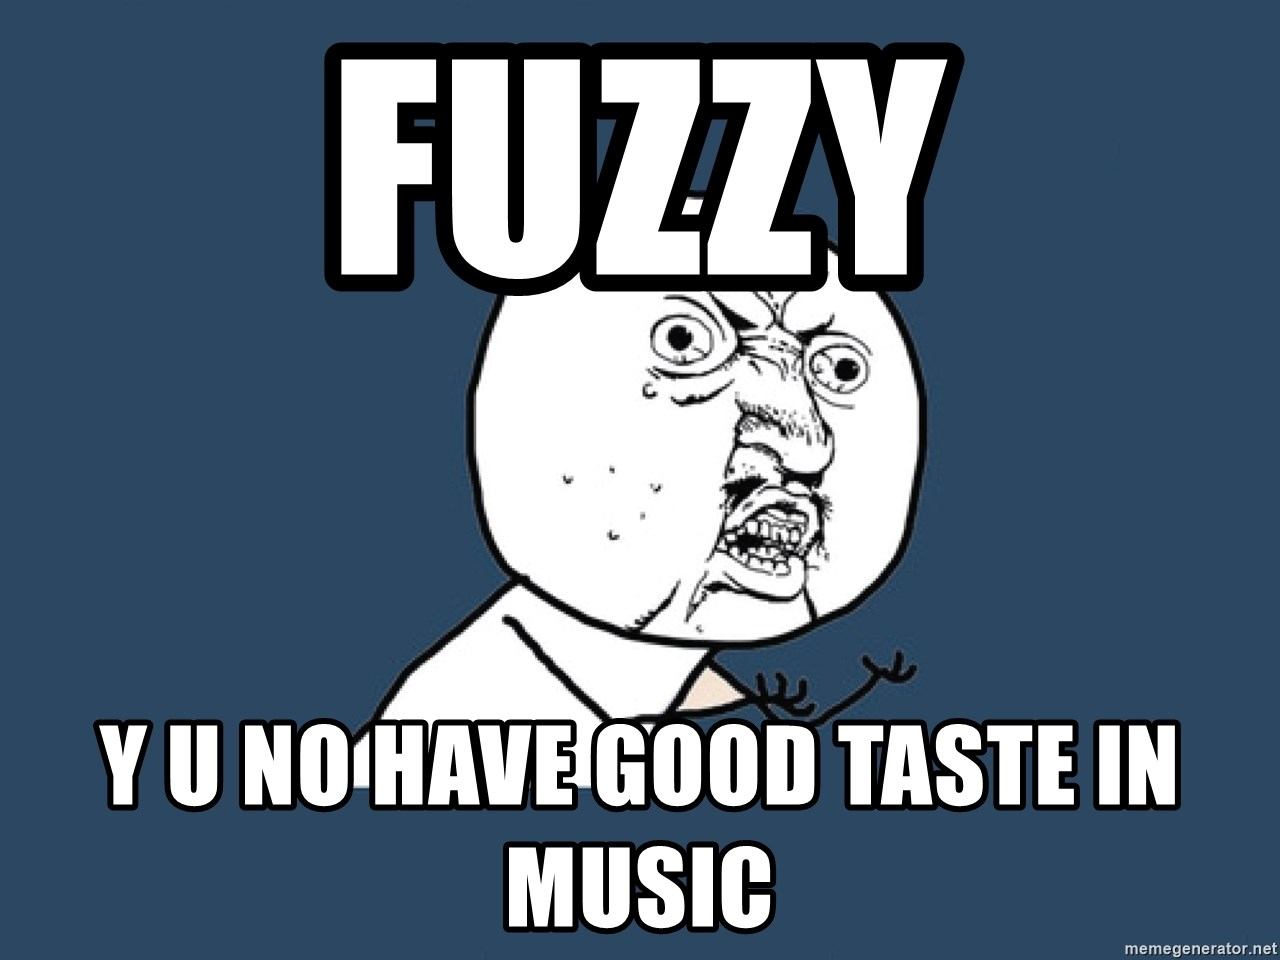 Y U No - FUZZY Y U NO HAVE GOOD TASTe IN MUSIC